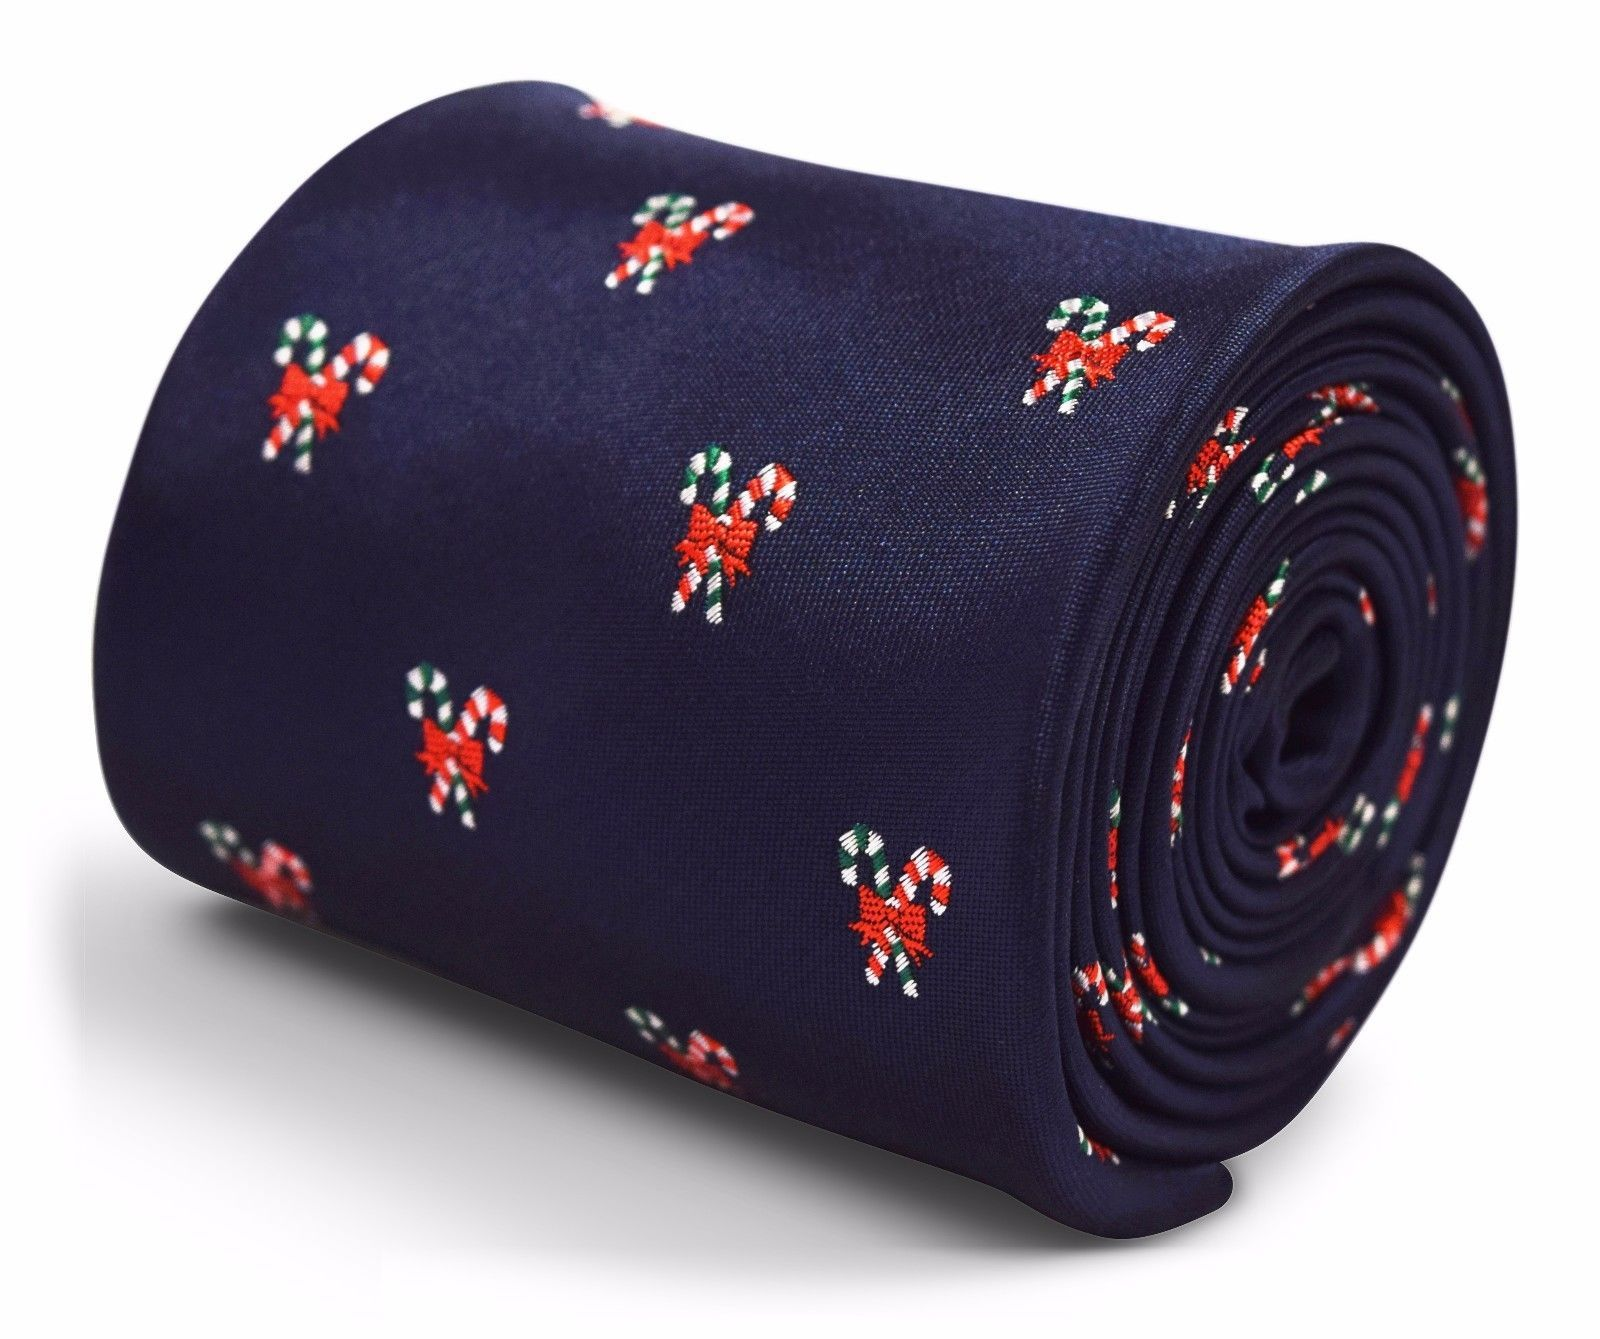 Frederick Thomas Christmas Secret Santa navy blue tie with candycane design